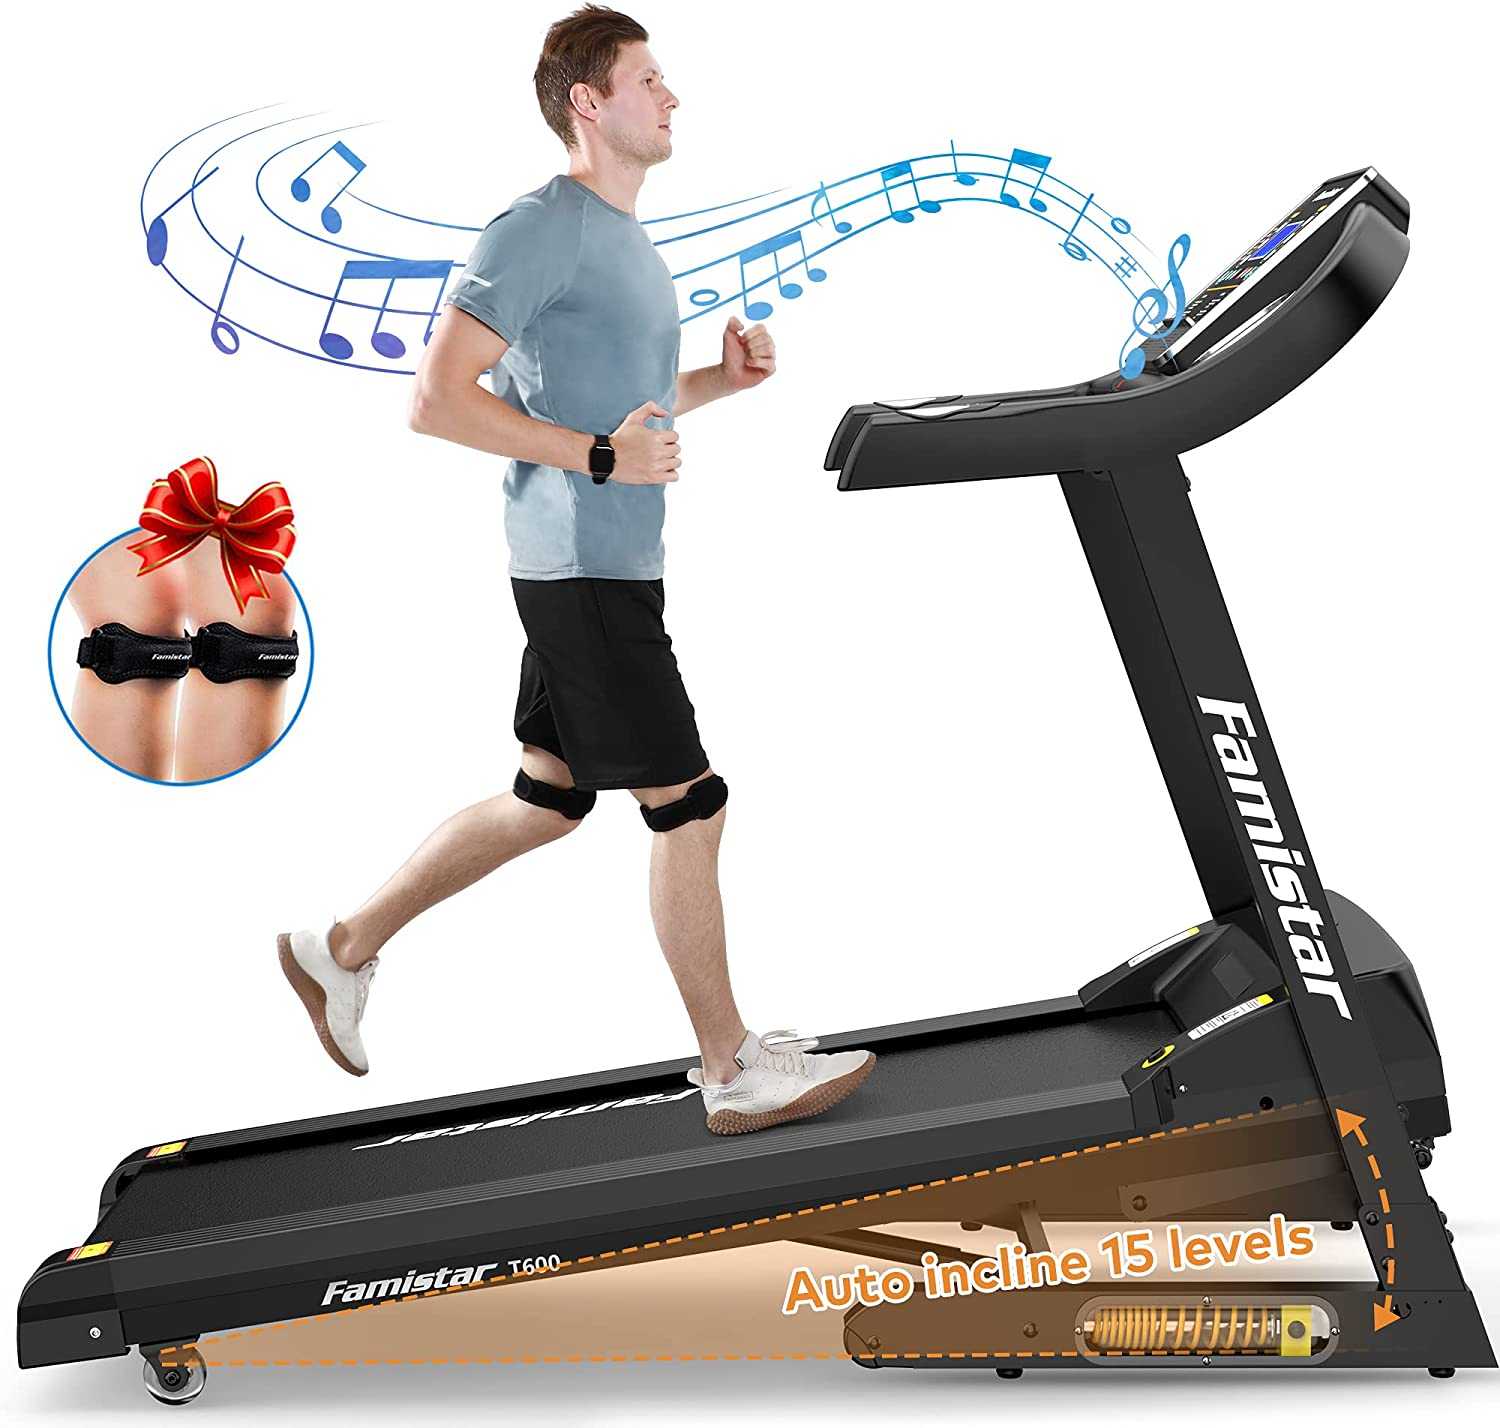 Famistar Treadmill New item Cash special price with 15% Auto Shock-A Incline Home for Smart